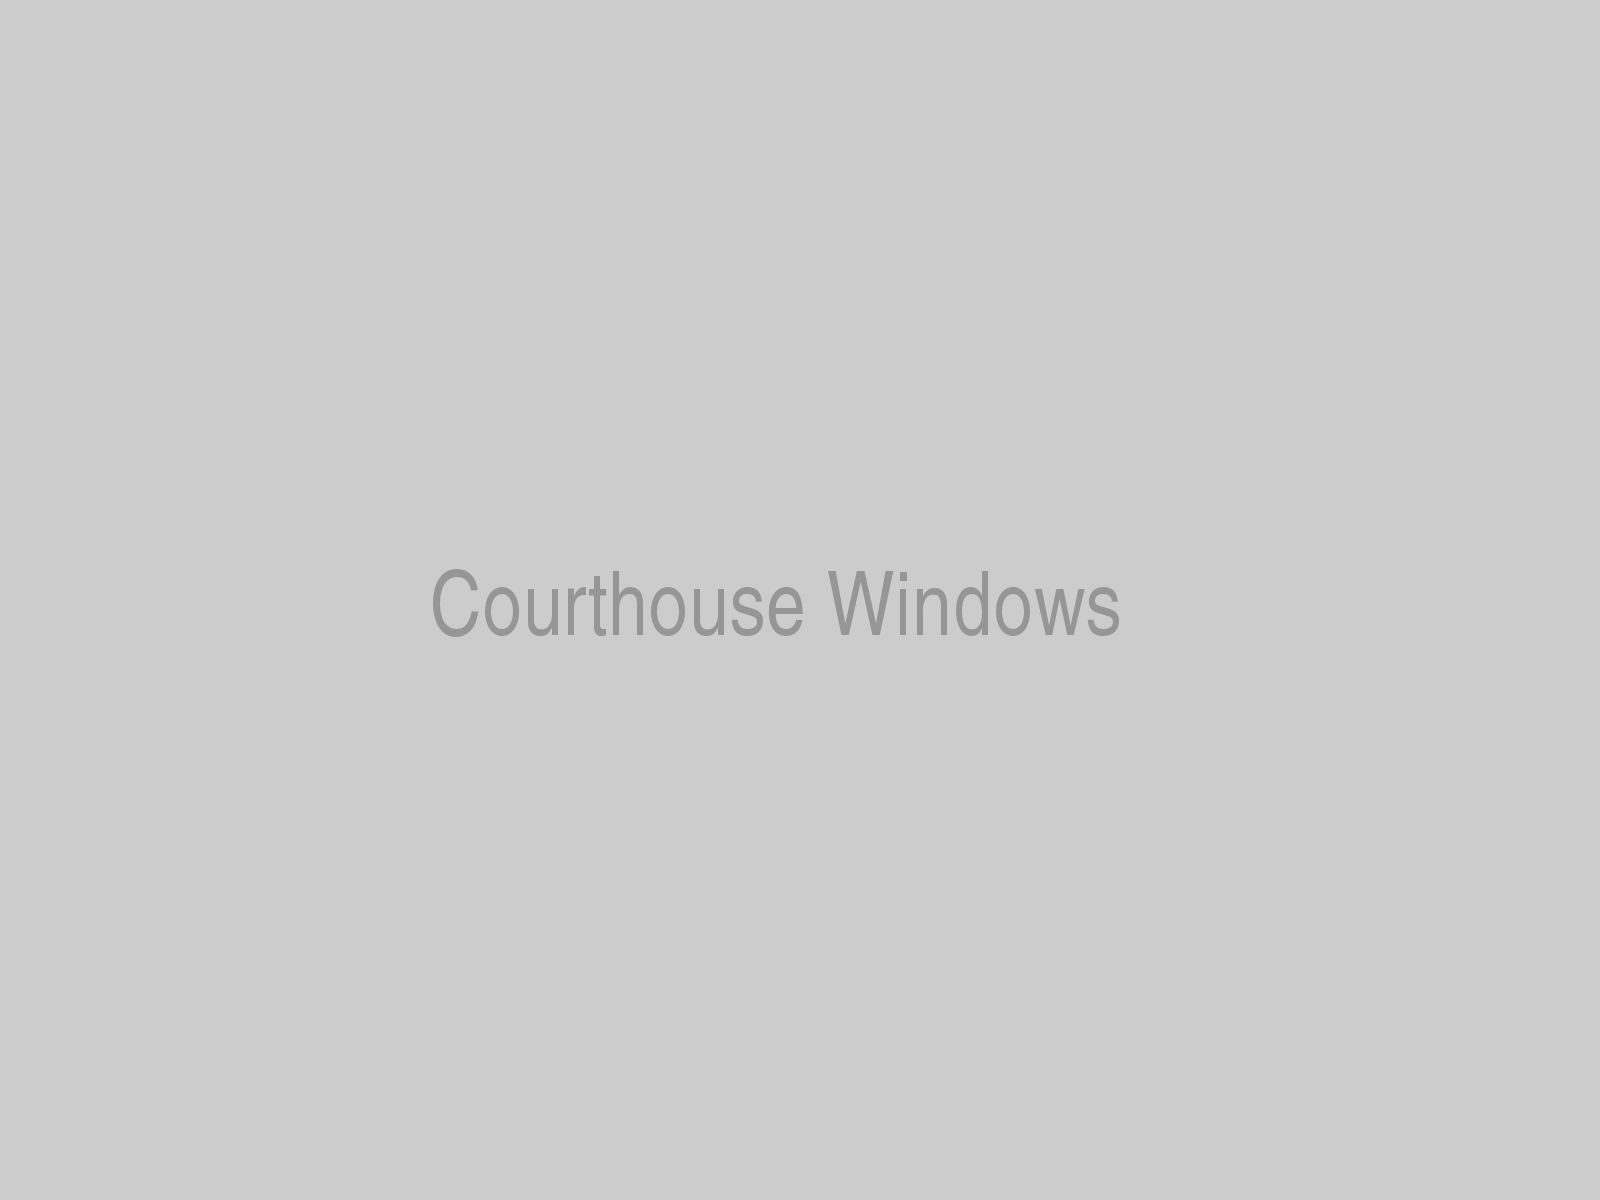 Courthouse Windows